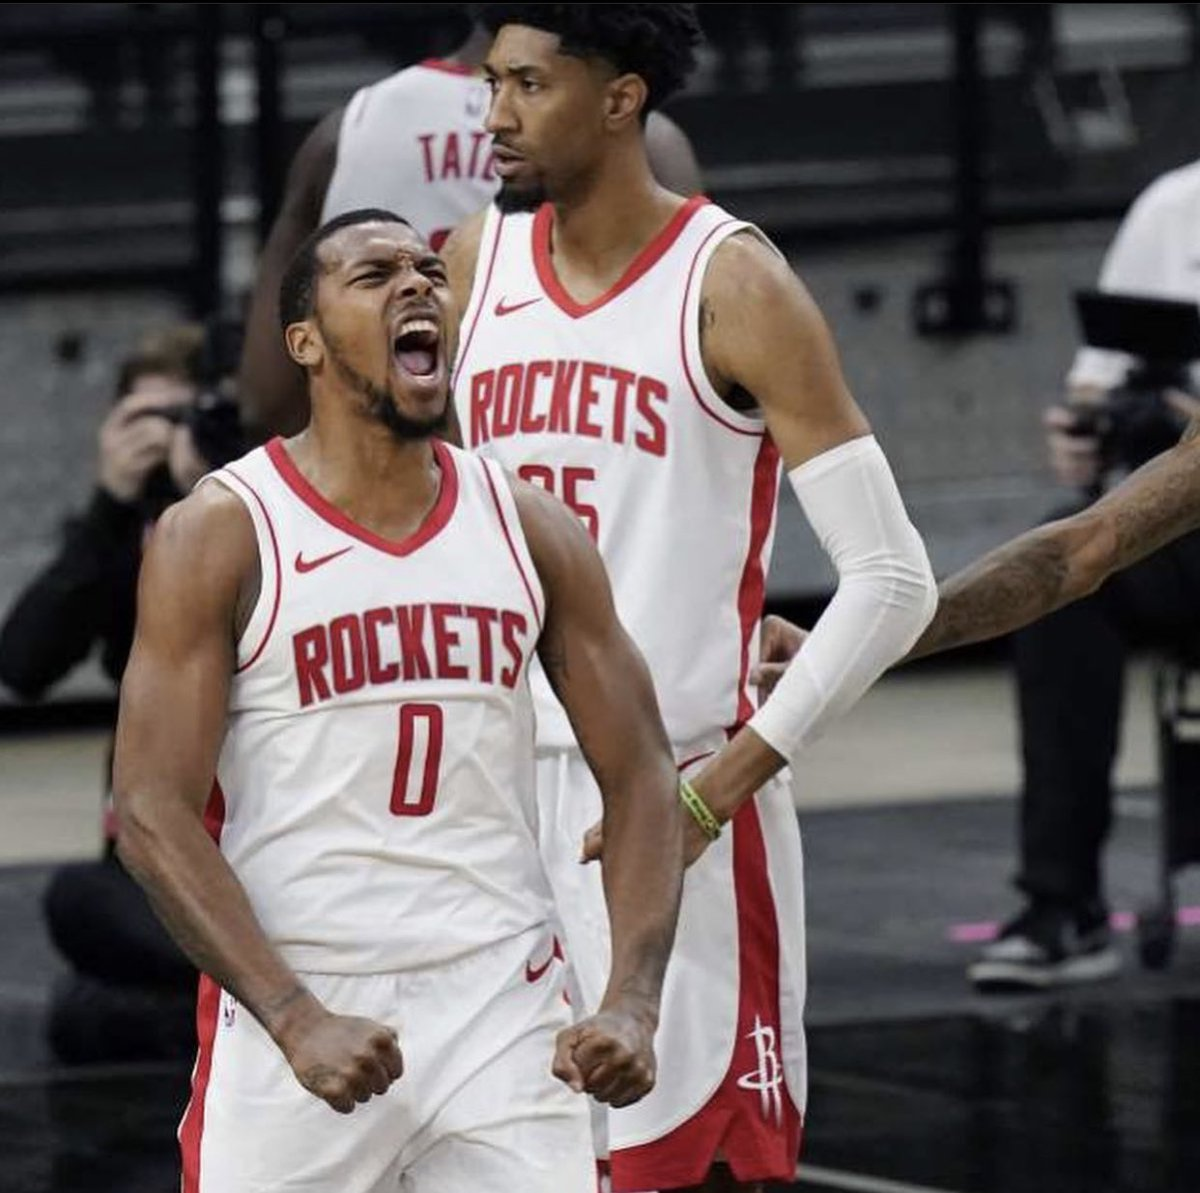 what a season...  huge shoutout again to all the day one #Rockets fans for sticking with this the whole ride, probably one of my favorite teams i have seen with all these young, bright future players  cant wait for next season, to the lottery we go🛹 https://t.co/oOnijDRqbE